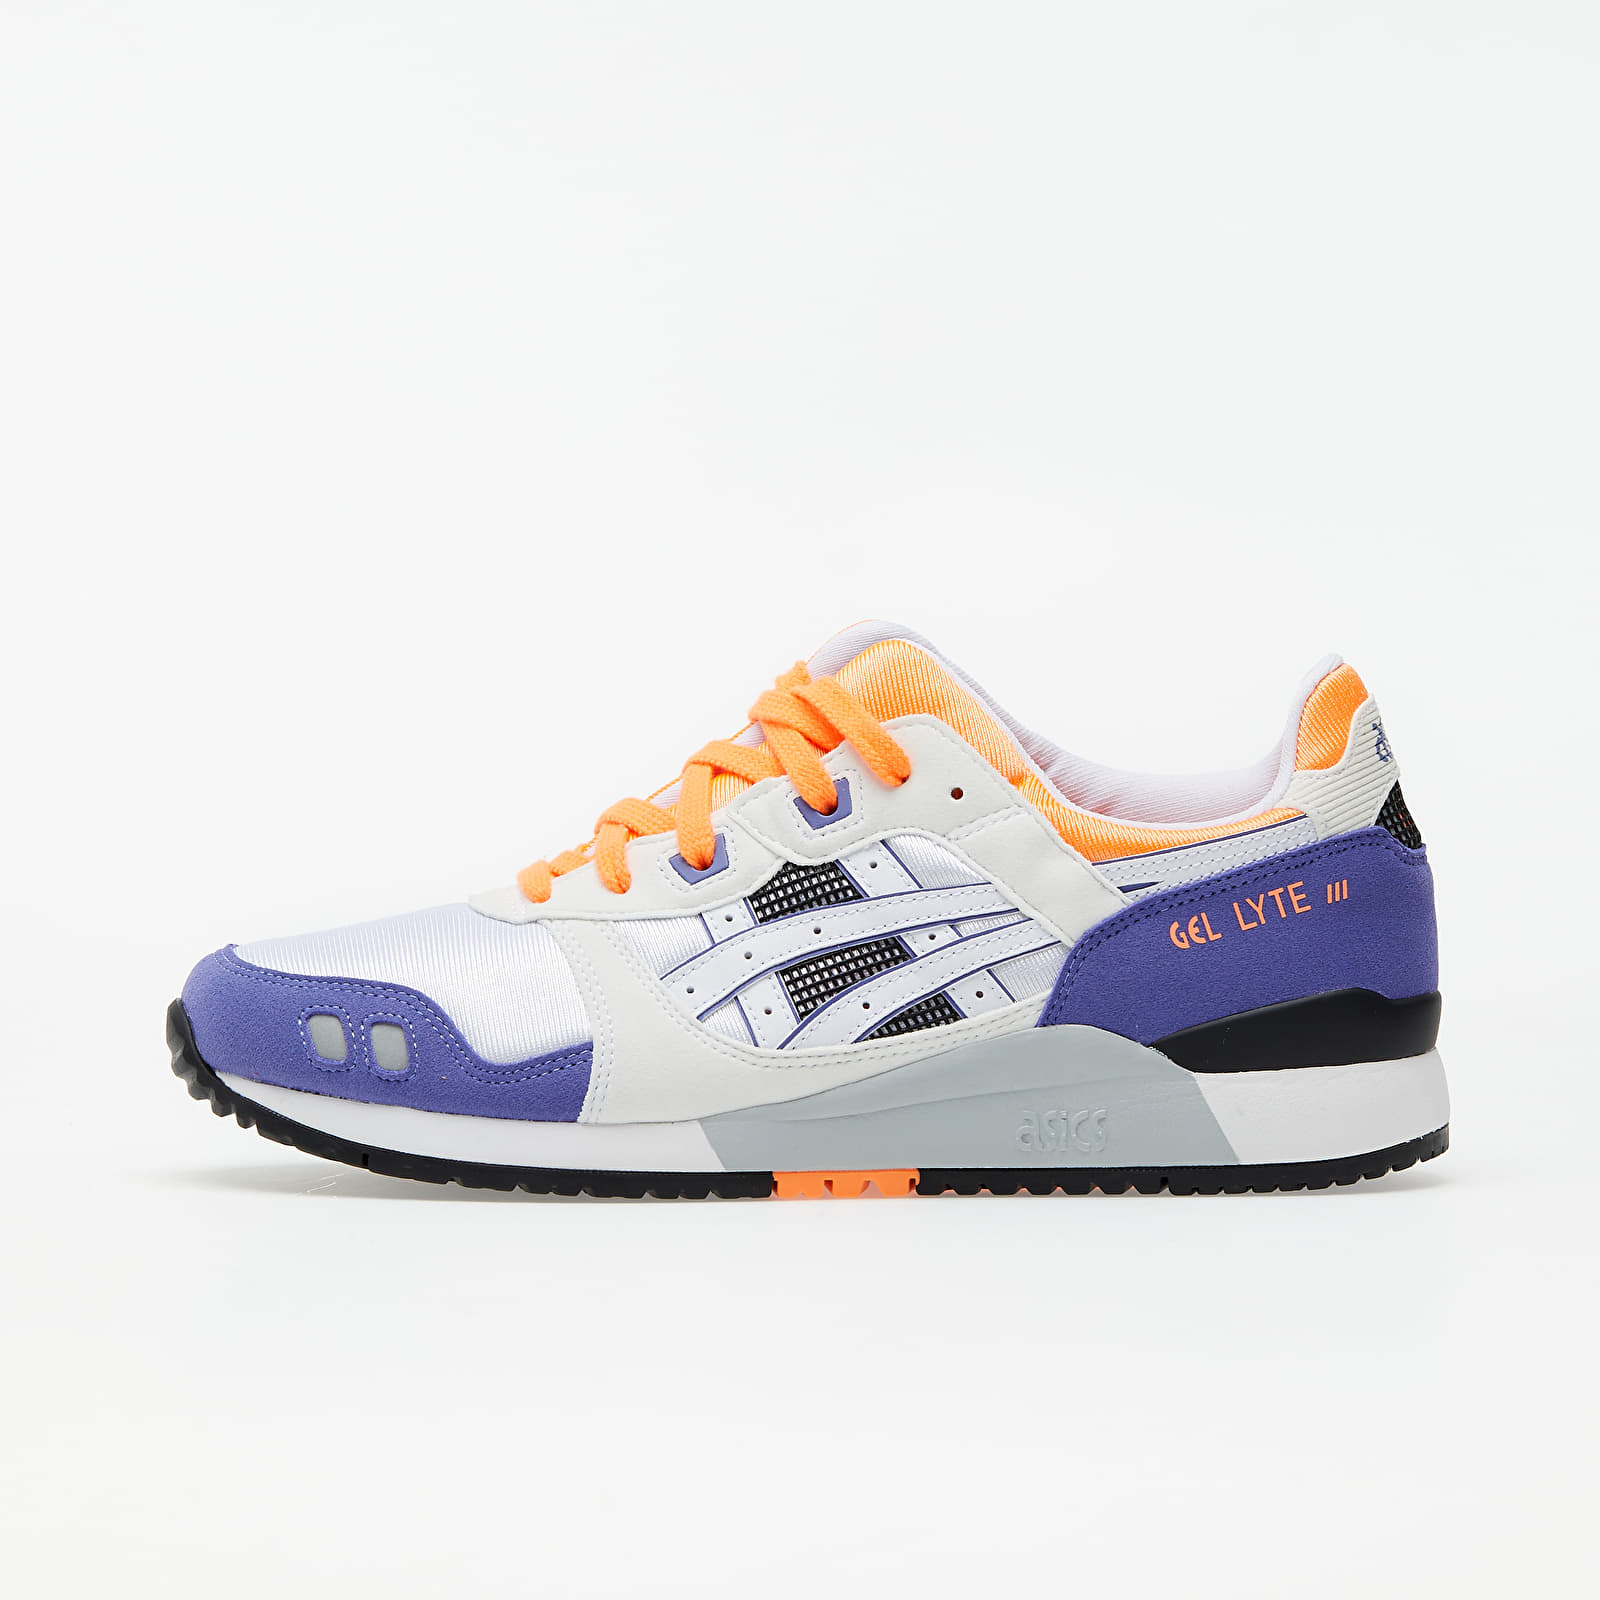 Asics Gel-Lyte III OG White/ Orange EUR 42